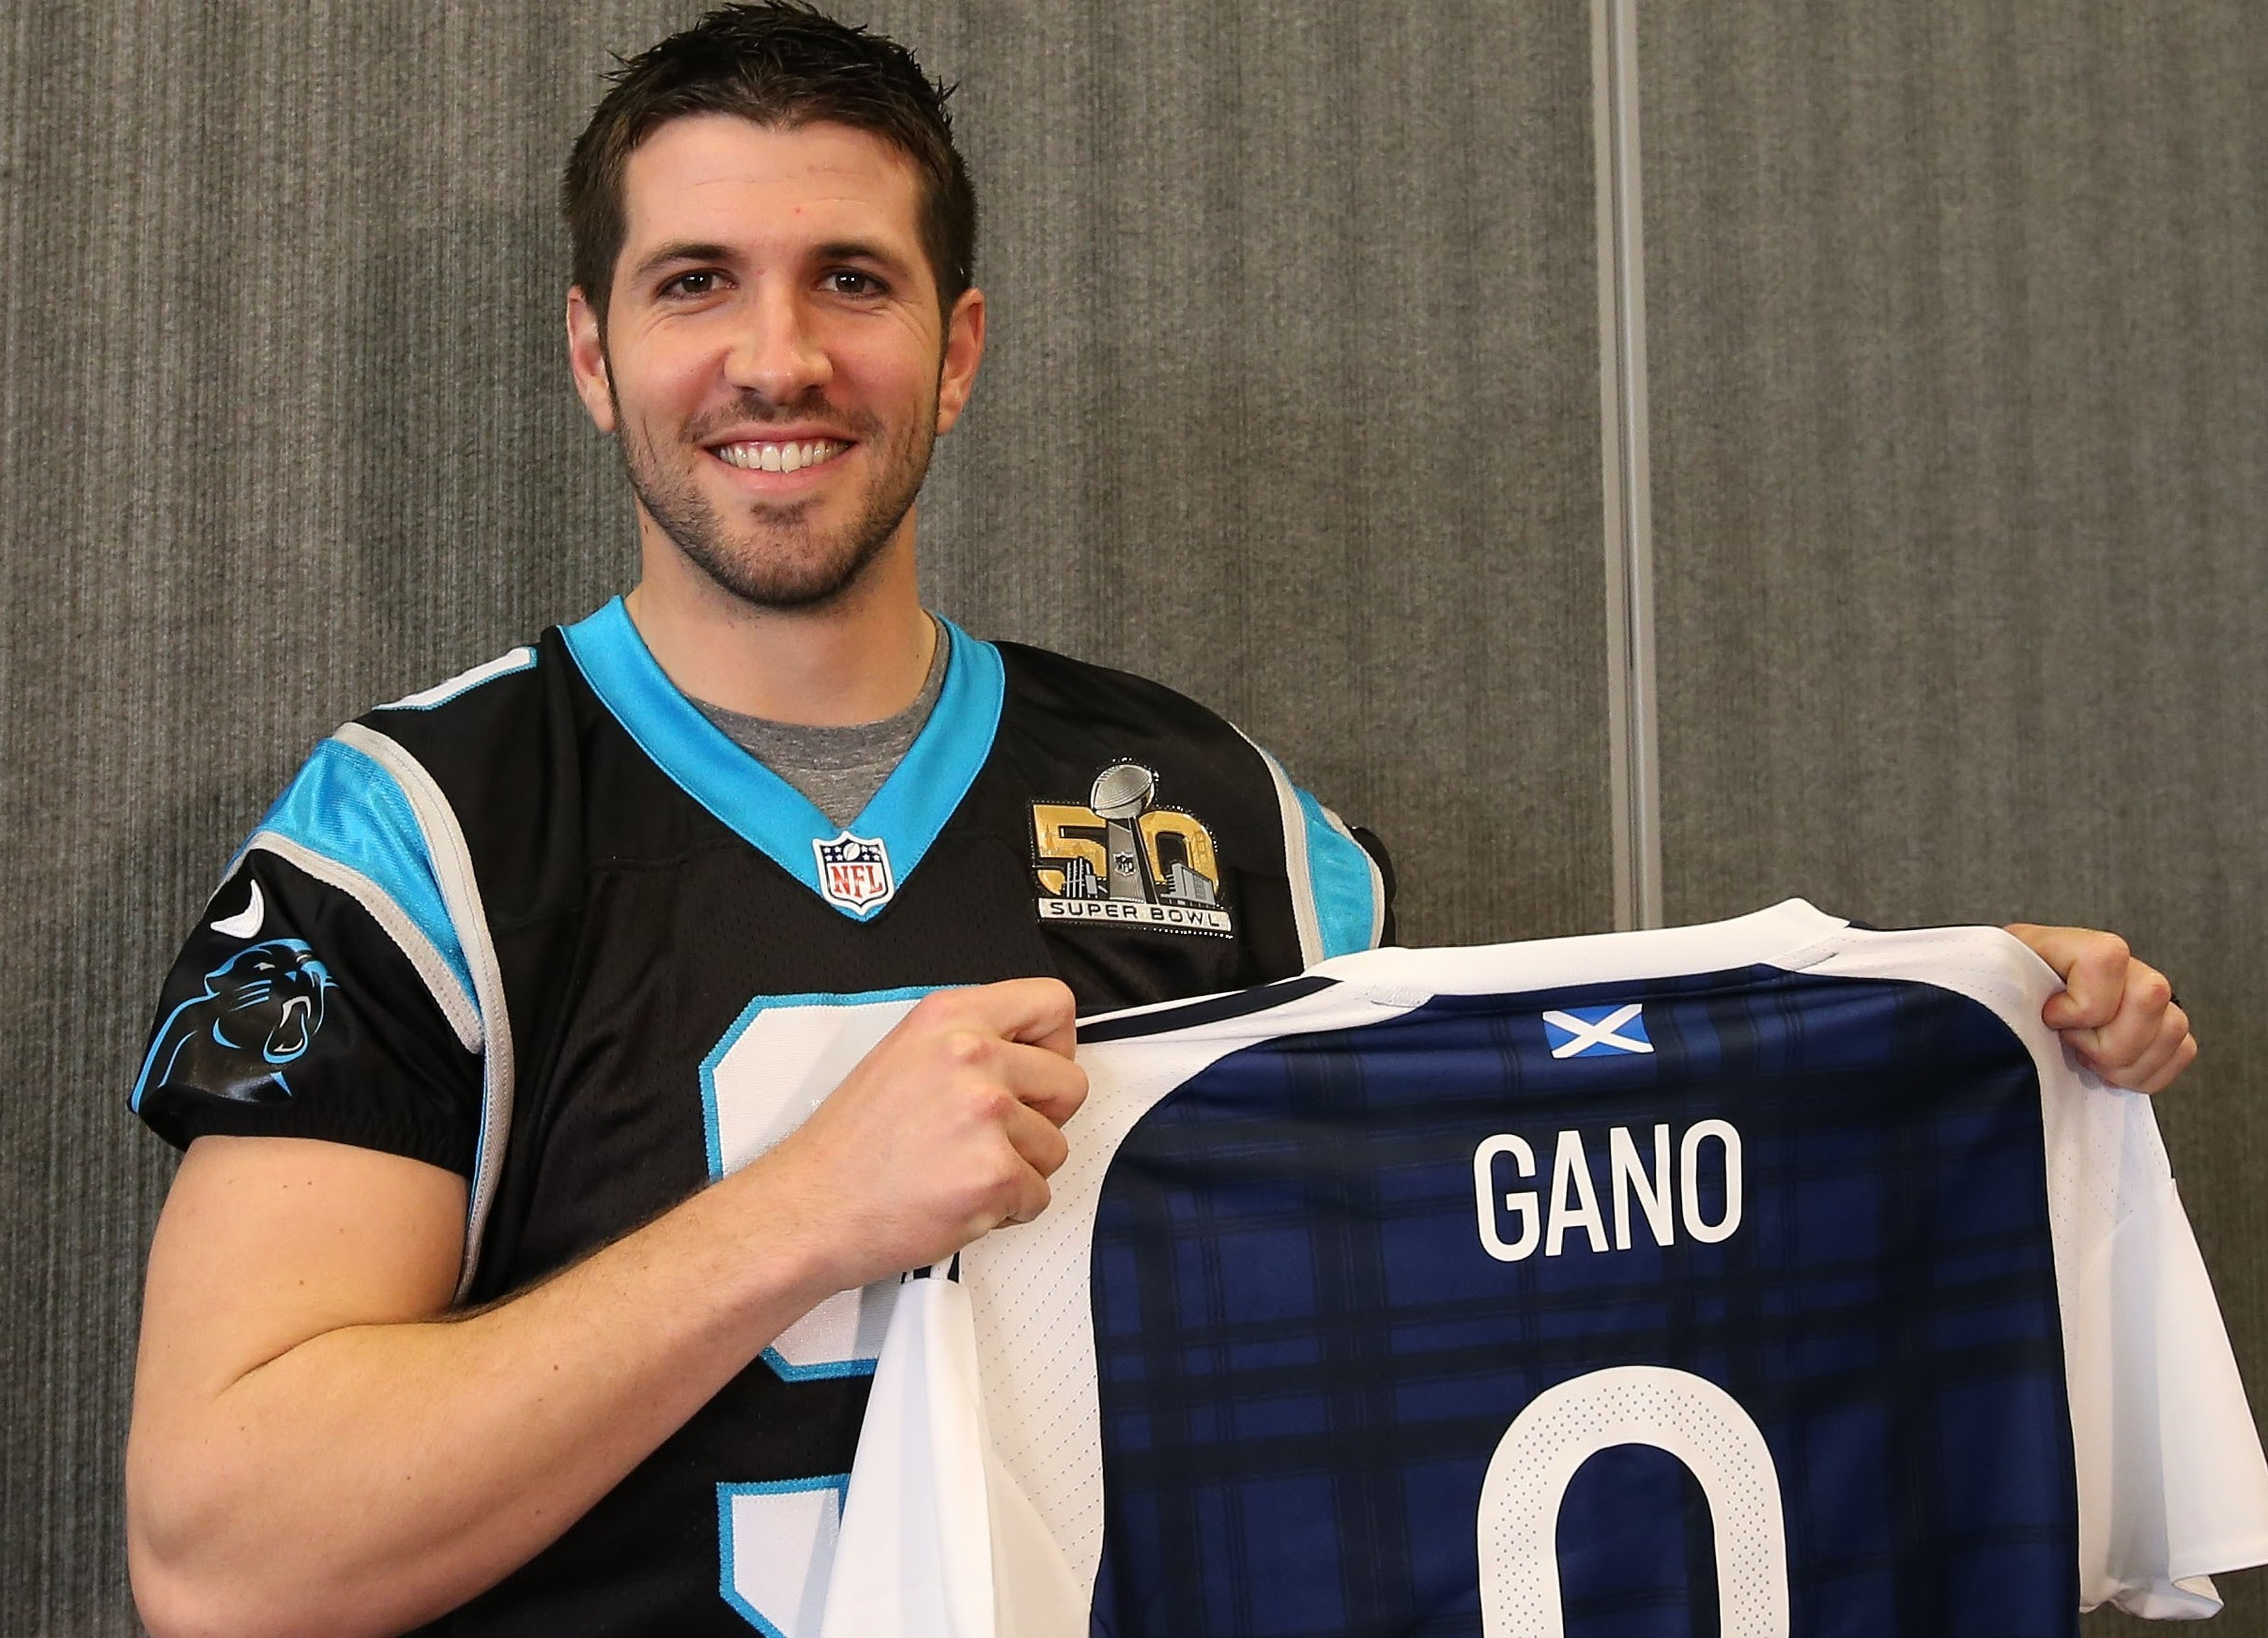 finest selection f13a2 fa68d Scots-born Super Bowl star Graham Gano planning to return to ...